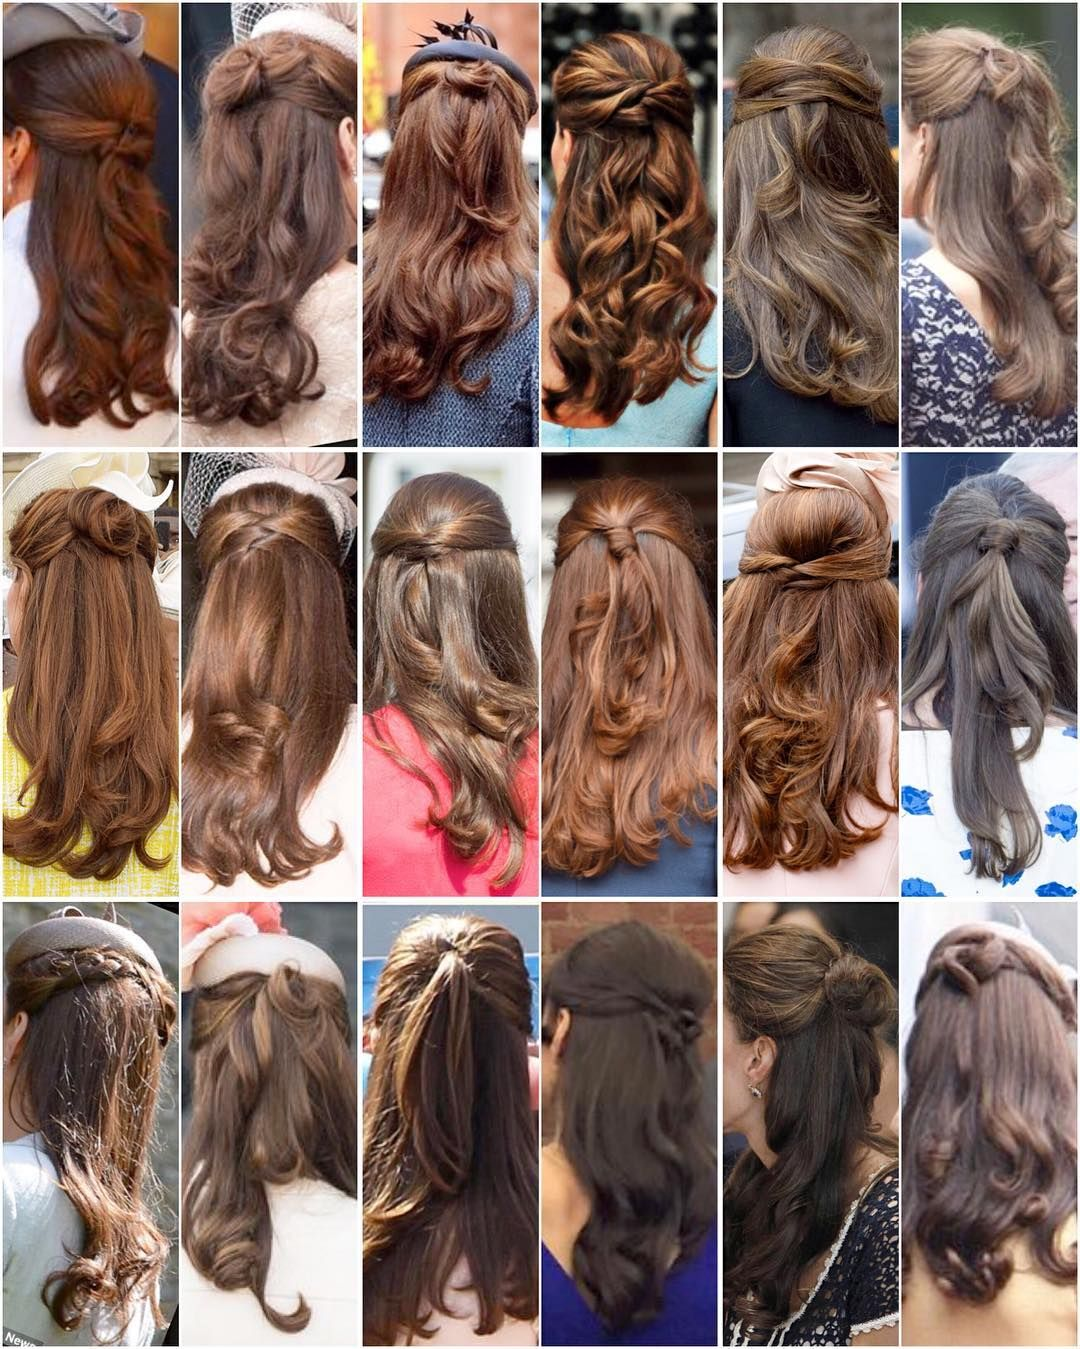 Kate S Beautiful Half Updo S Notice That Each One Is Slightly Different I Never Knew There Were So Many Different Wa Kate Middleton Hair Hair Styles One Hair